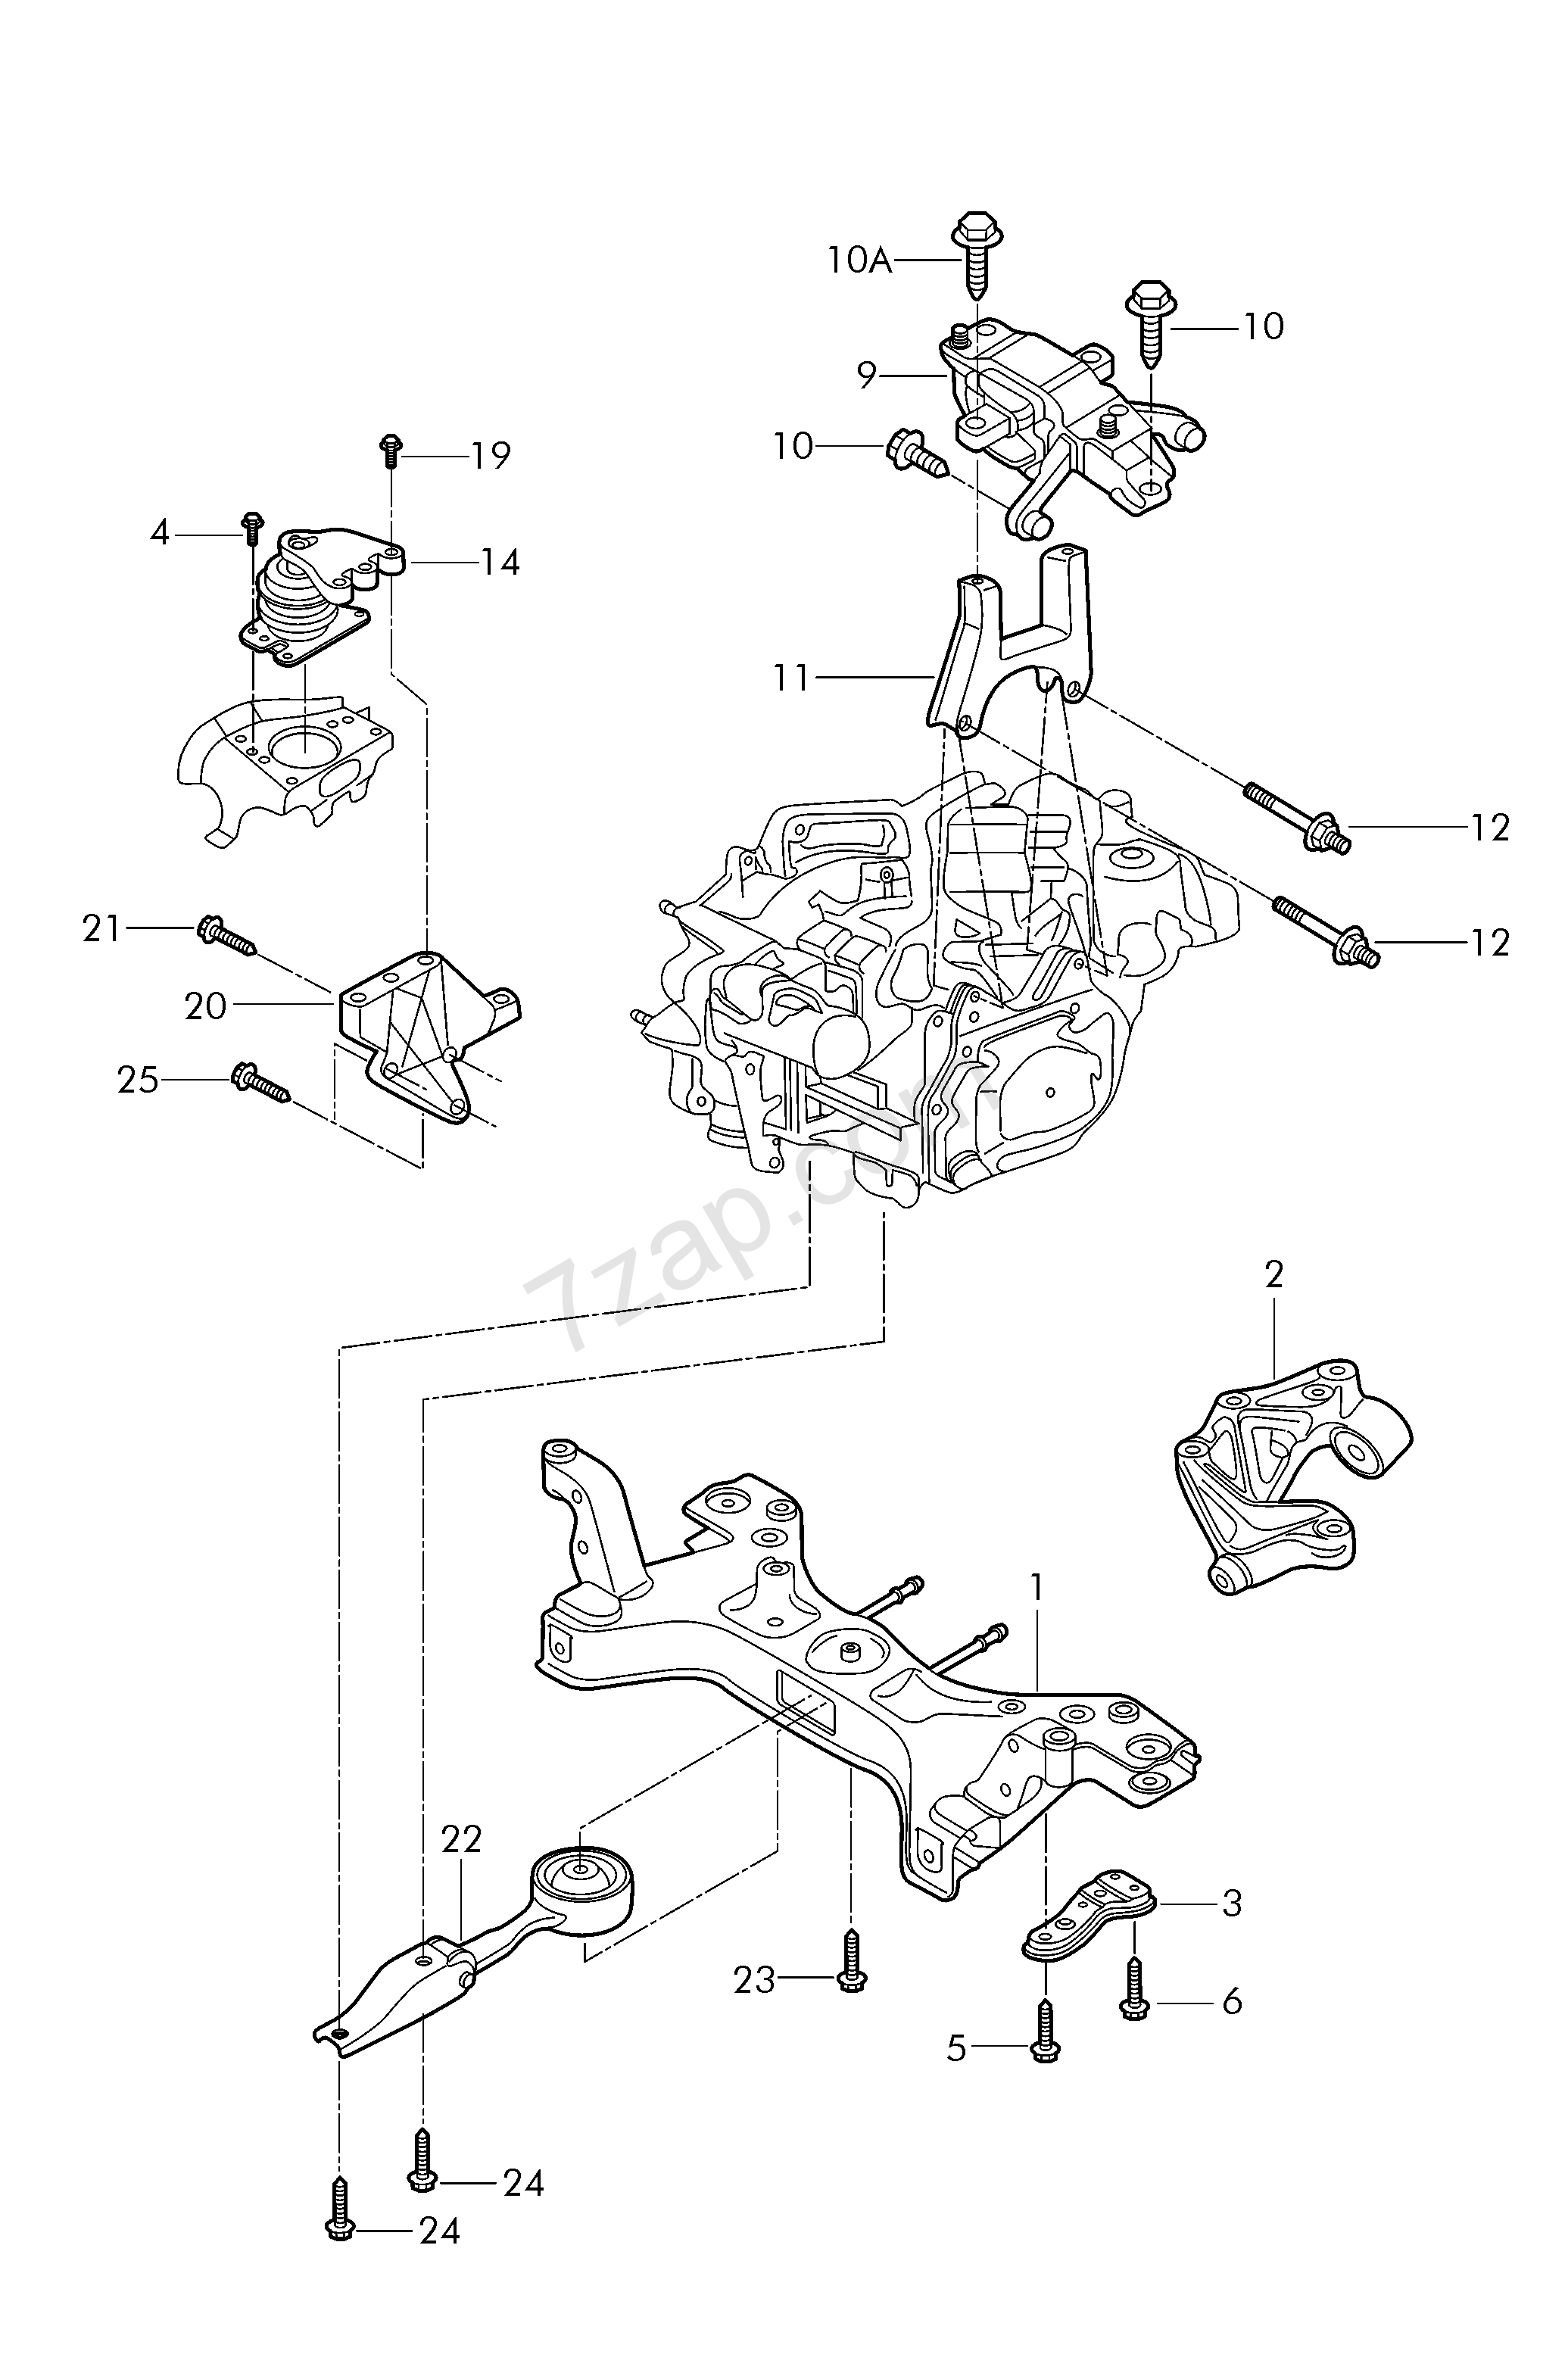 Vw Engine Mount Diagram Electrical Wiring Diagrams W8 Mounting Parts For And Transmission Fox Fo 2015 Year 2000 Jetta